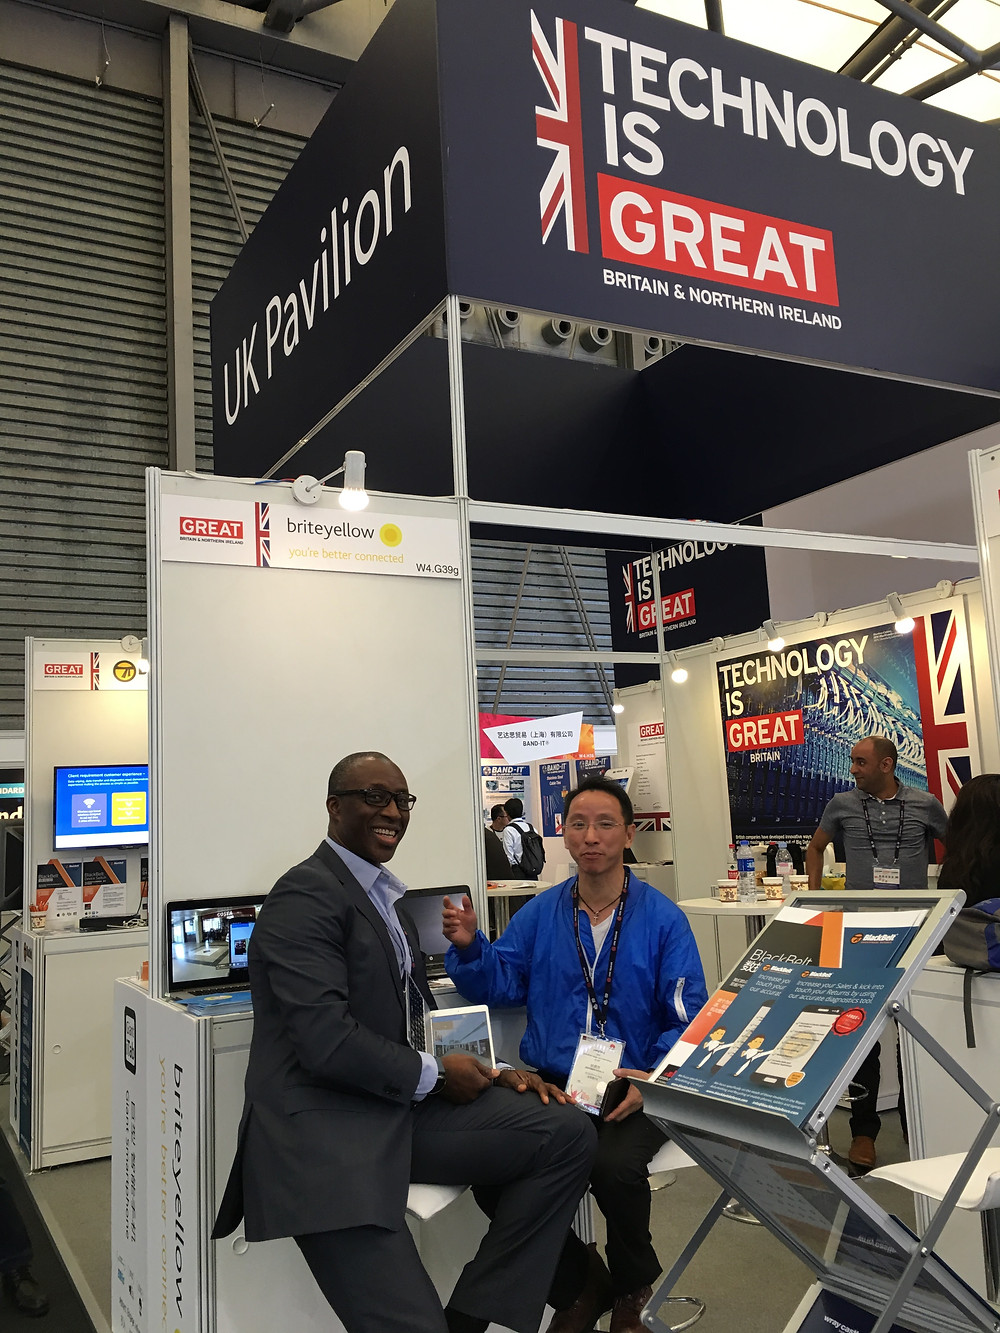 Briteyellow's stand at the Mobile World Congress in Shanghai